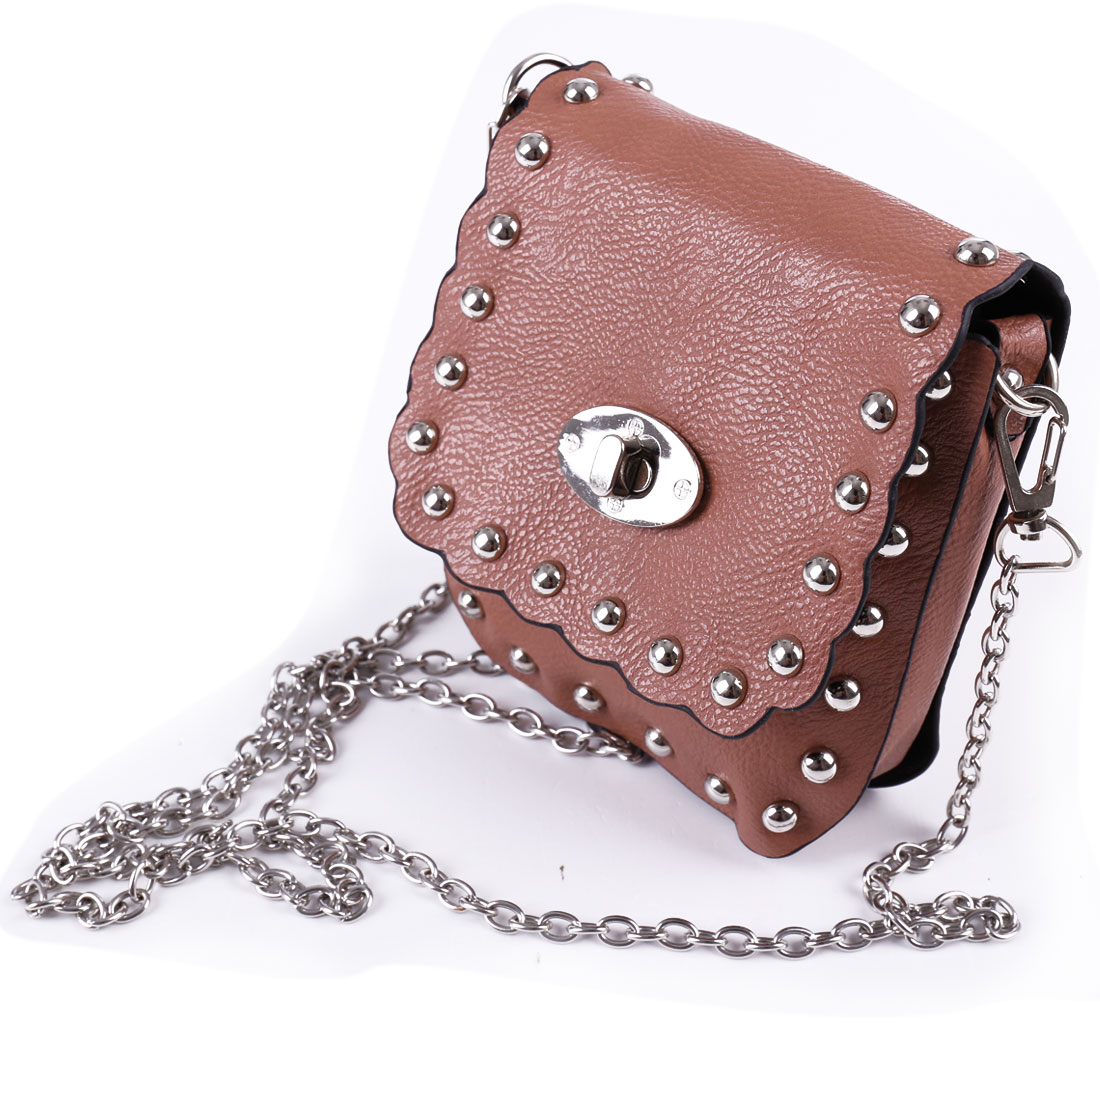 Lady Stud Decor Pink Litchi Faux Leather Turn Lock Clasp Crossbody Shoulder Bag